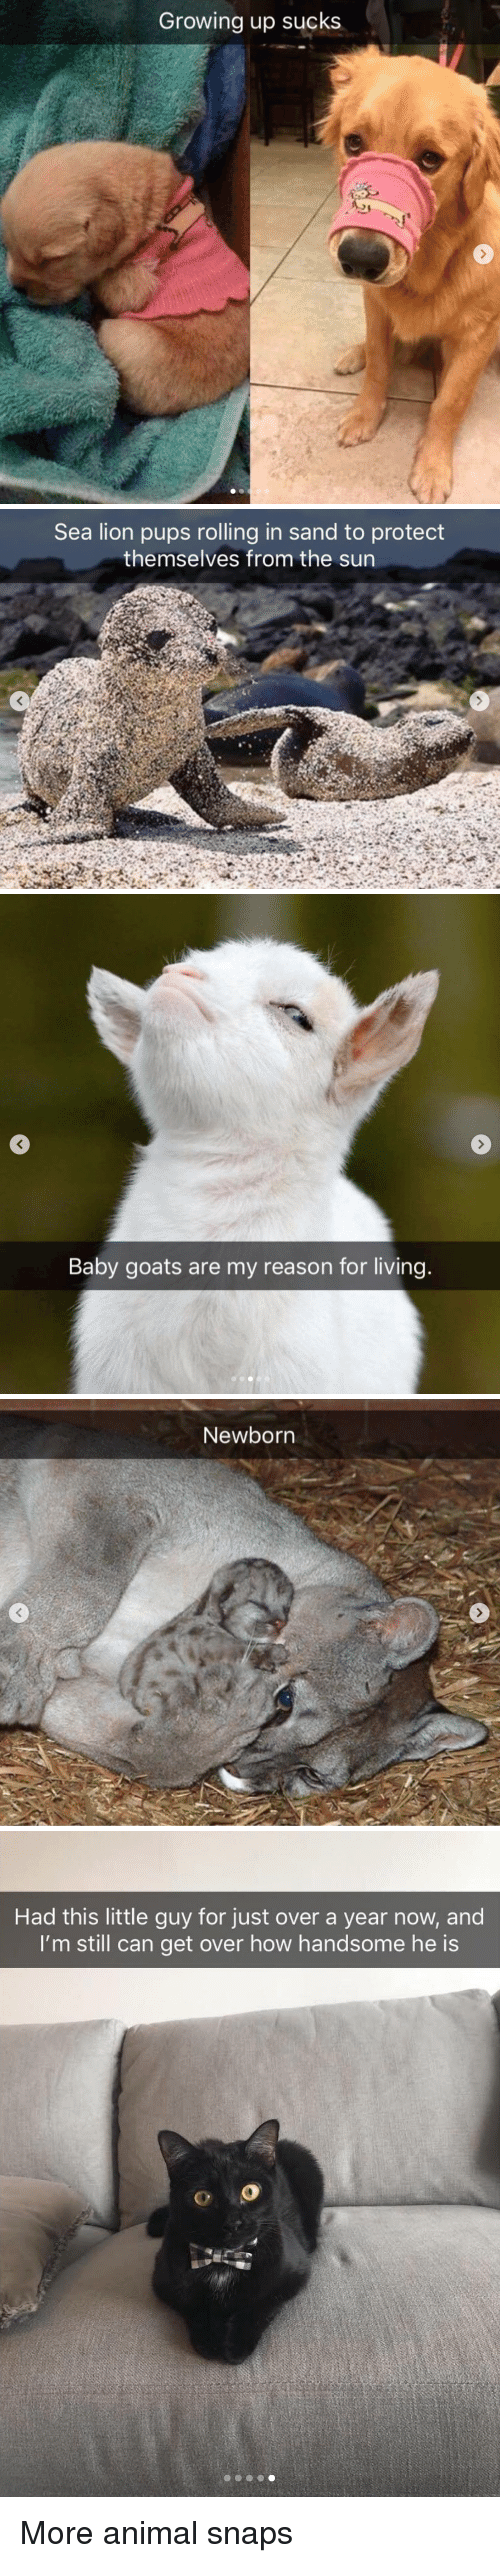 Growing Up, Animal, and Lion: Growing up sucks   Sea lion pups rolling in sand to protect  themselves from the sun   Baby goats are my reason for living   Newborn   Had this little guy for just over a year now, and  I'm still can get over how handsome he is More animal snaps